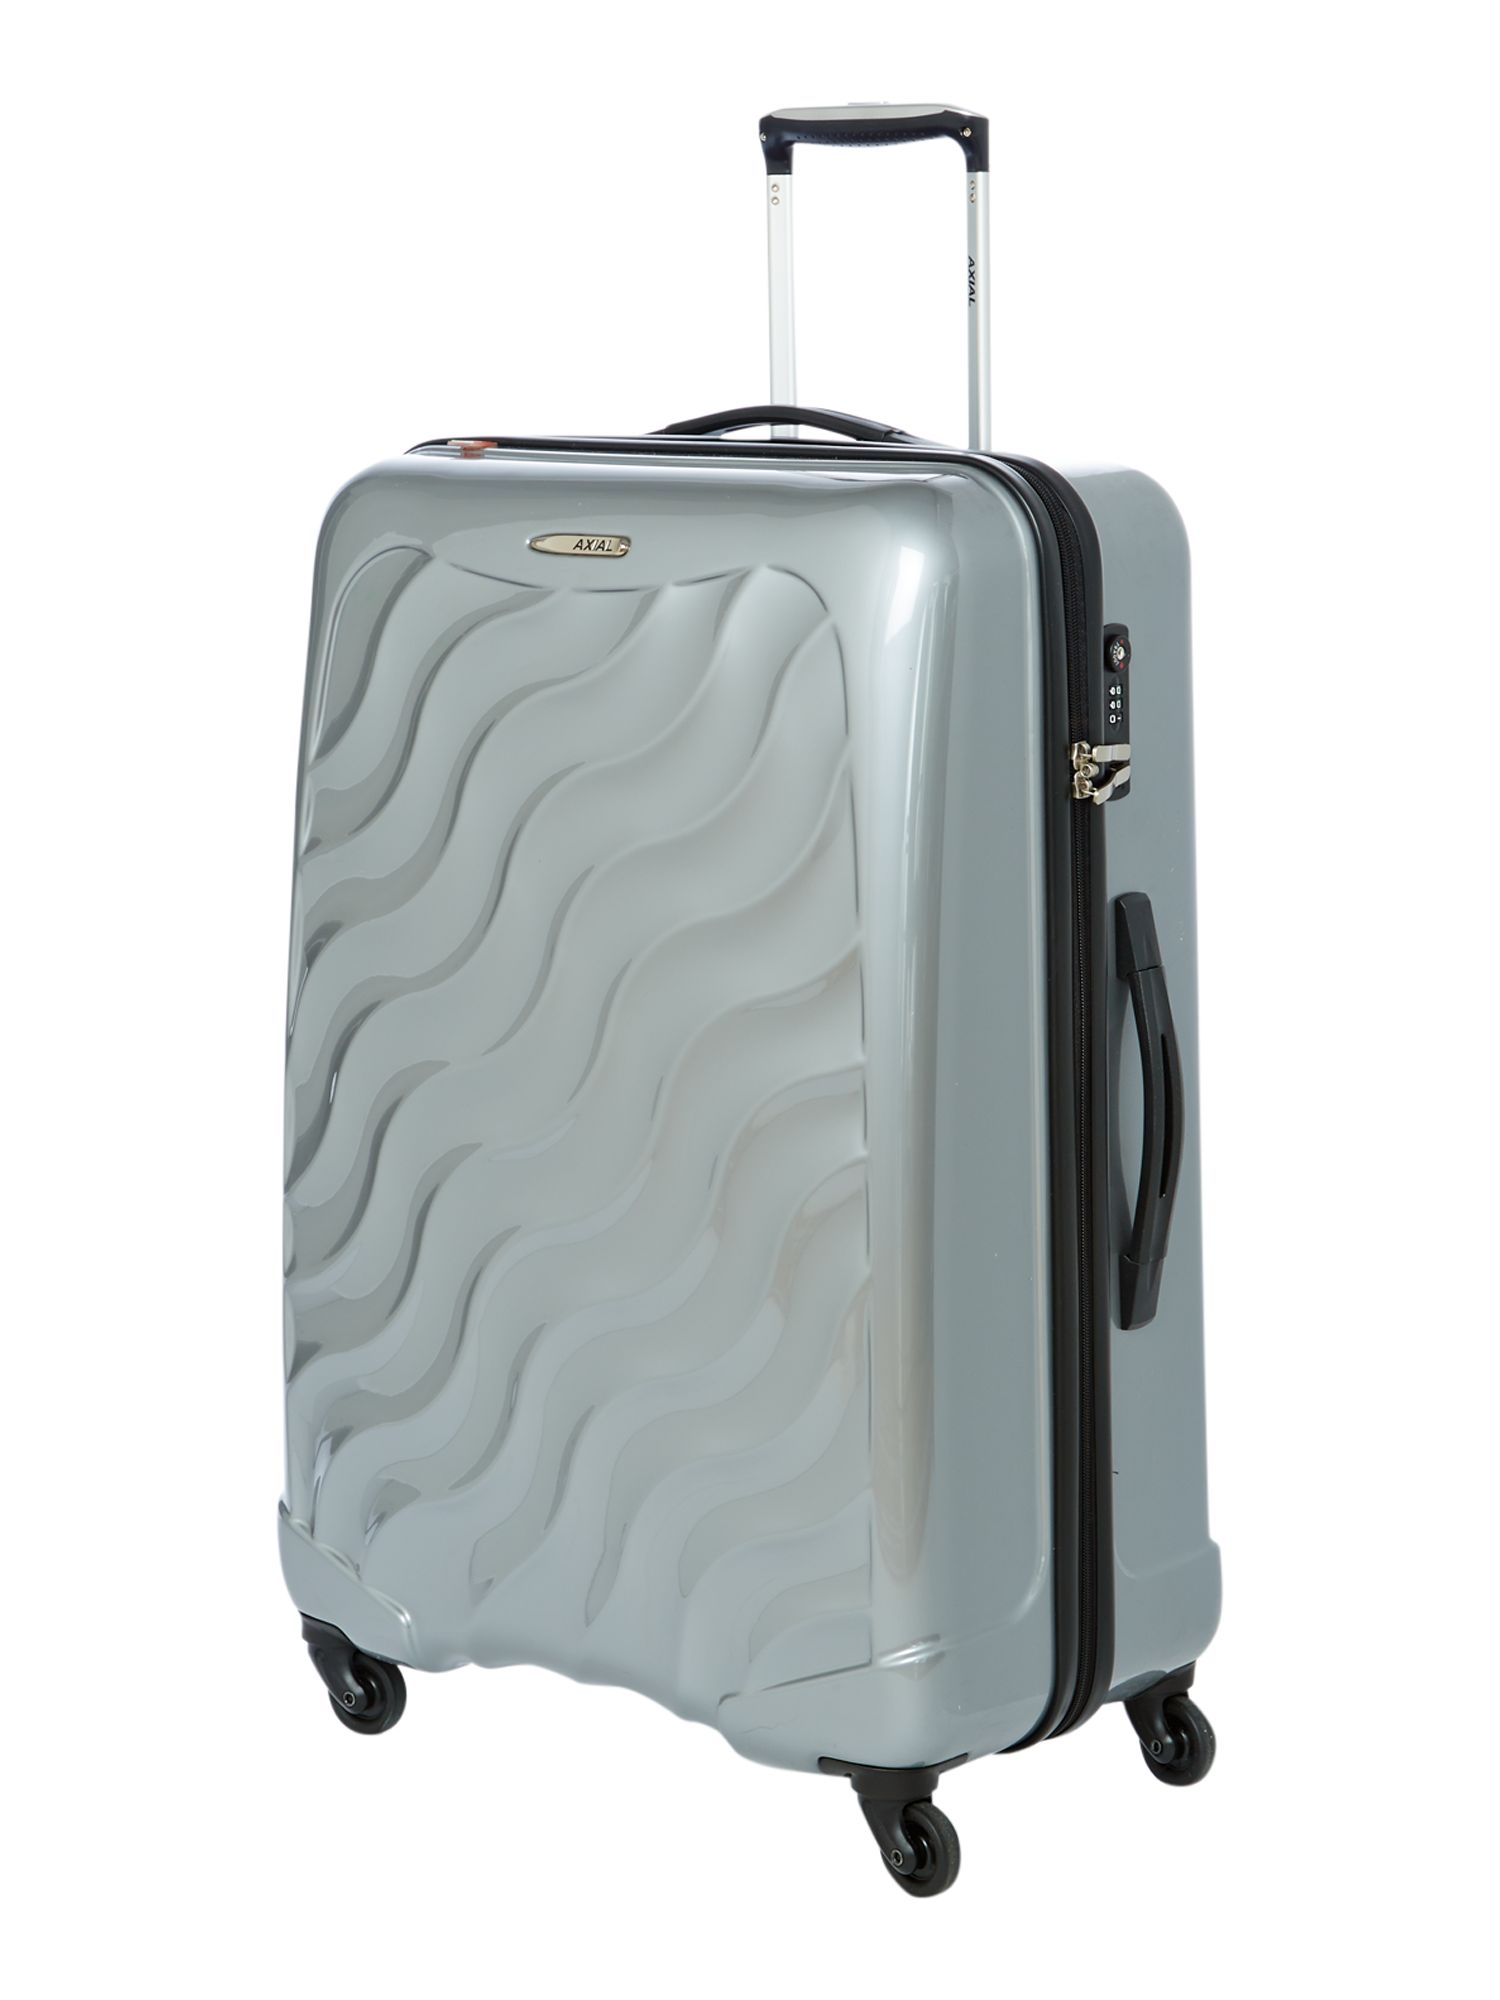 Delsey Axial Large 4 Wheel Silver Suitcase in Metallic for Men | Lyst